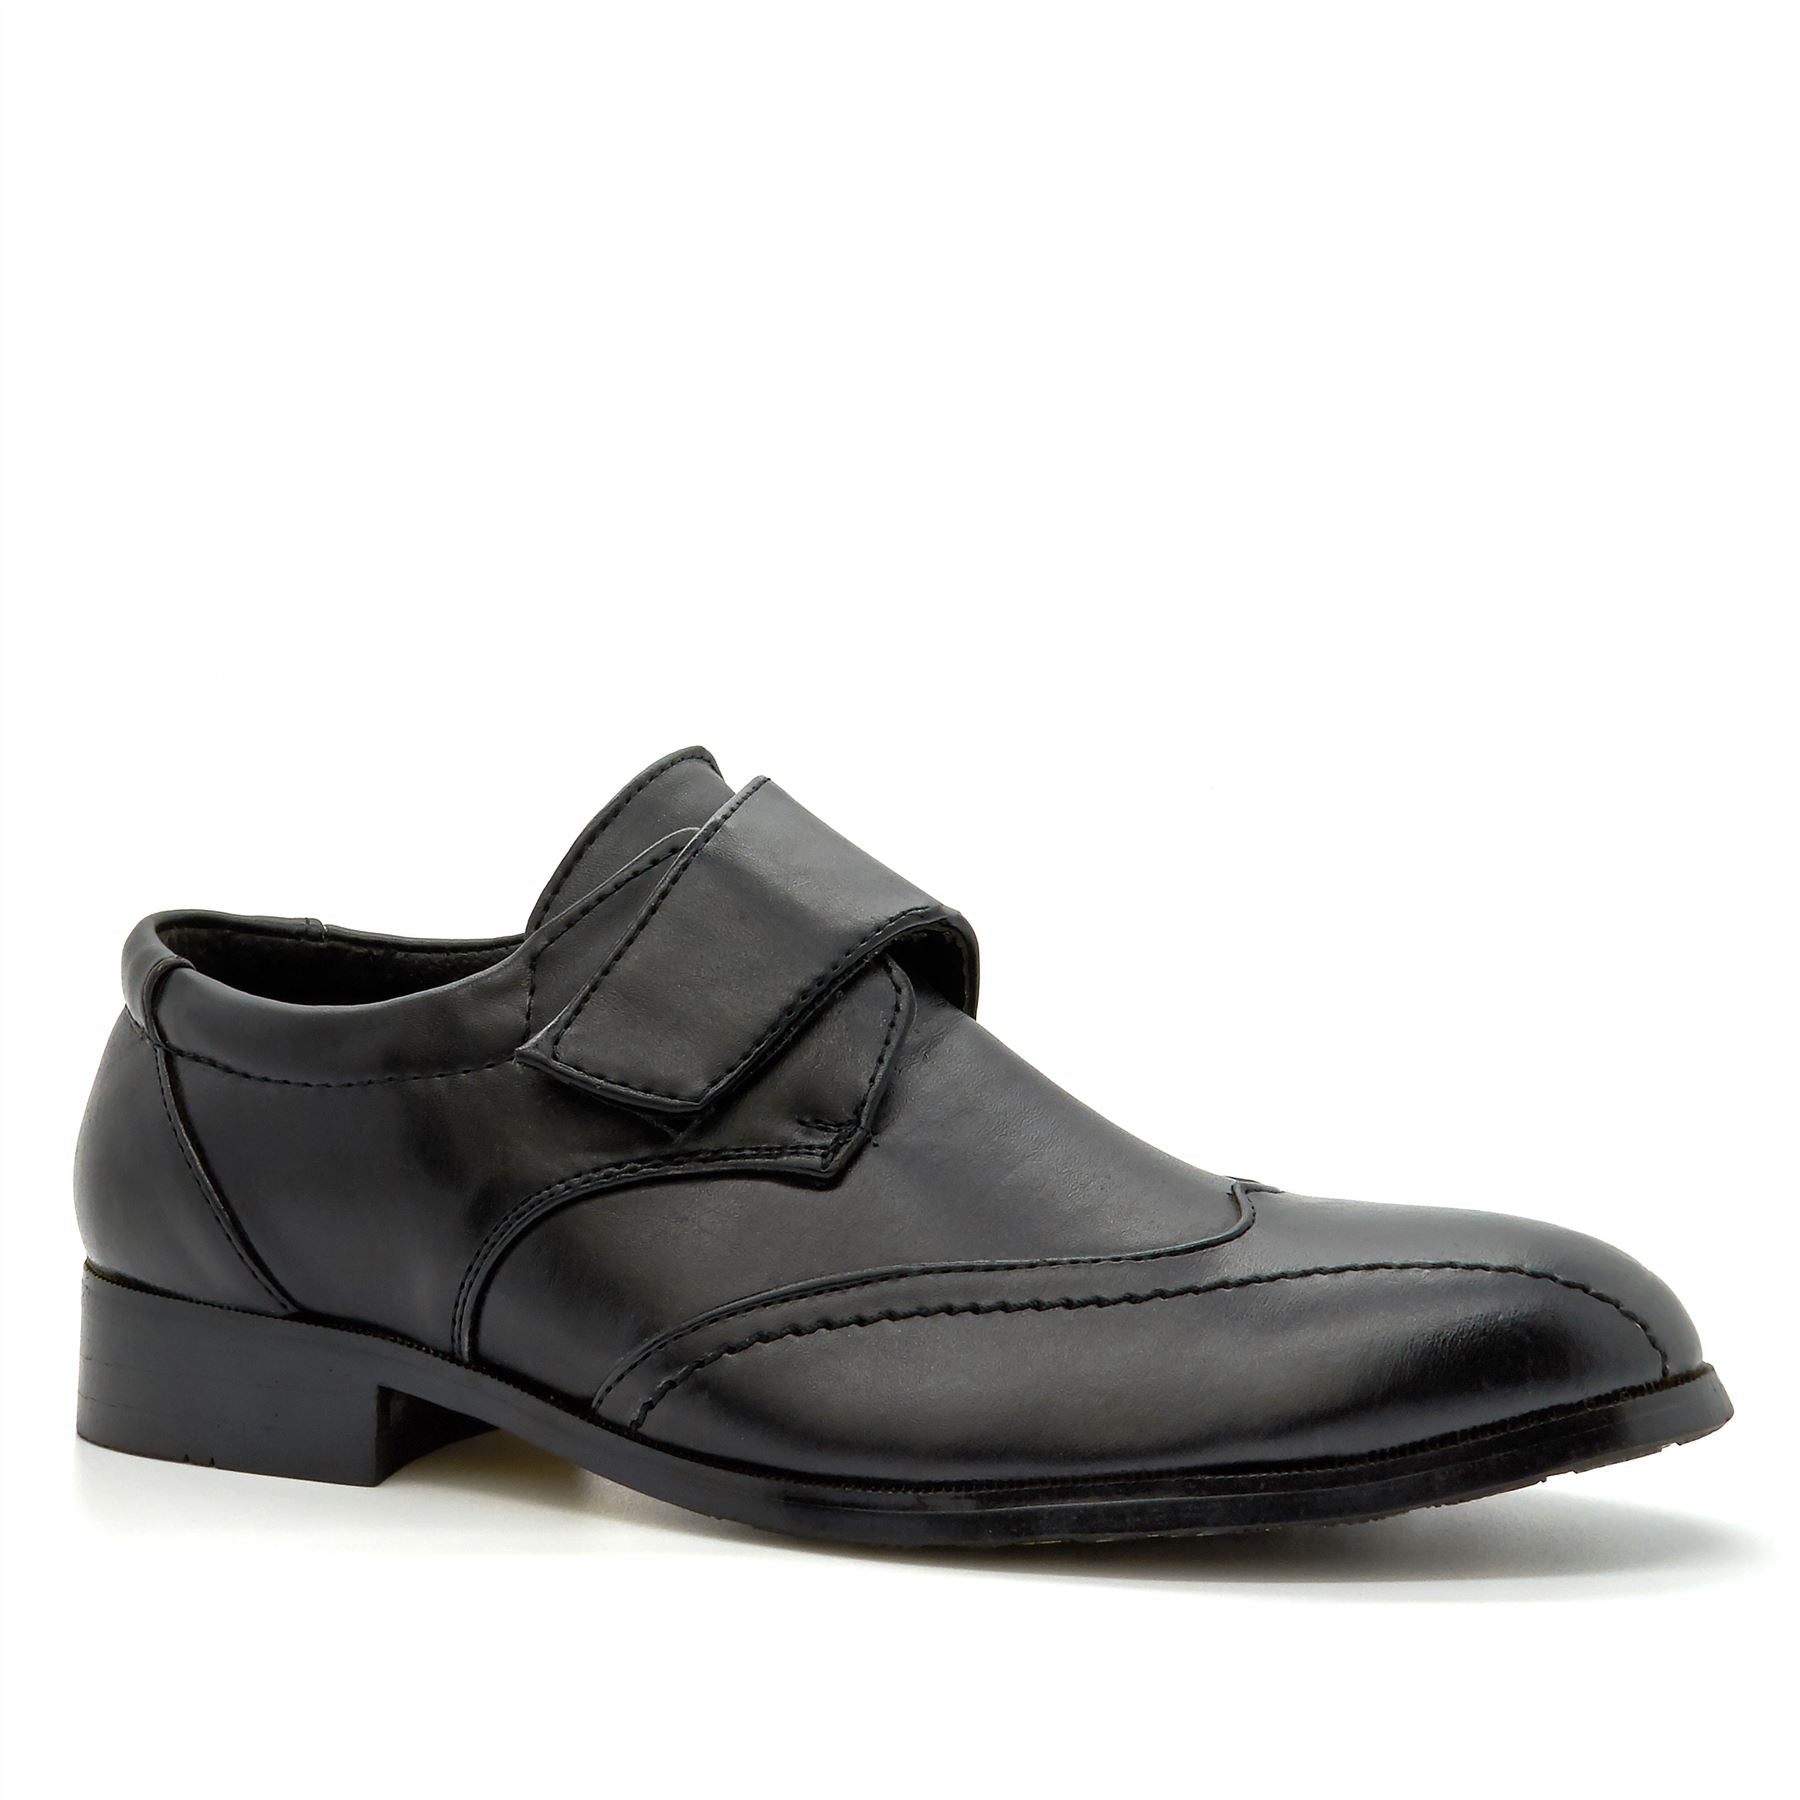 Black Hook & Loop Wingtip Loafers